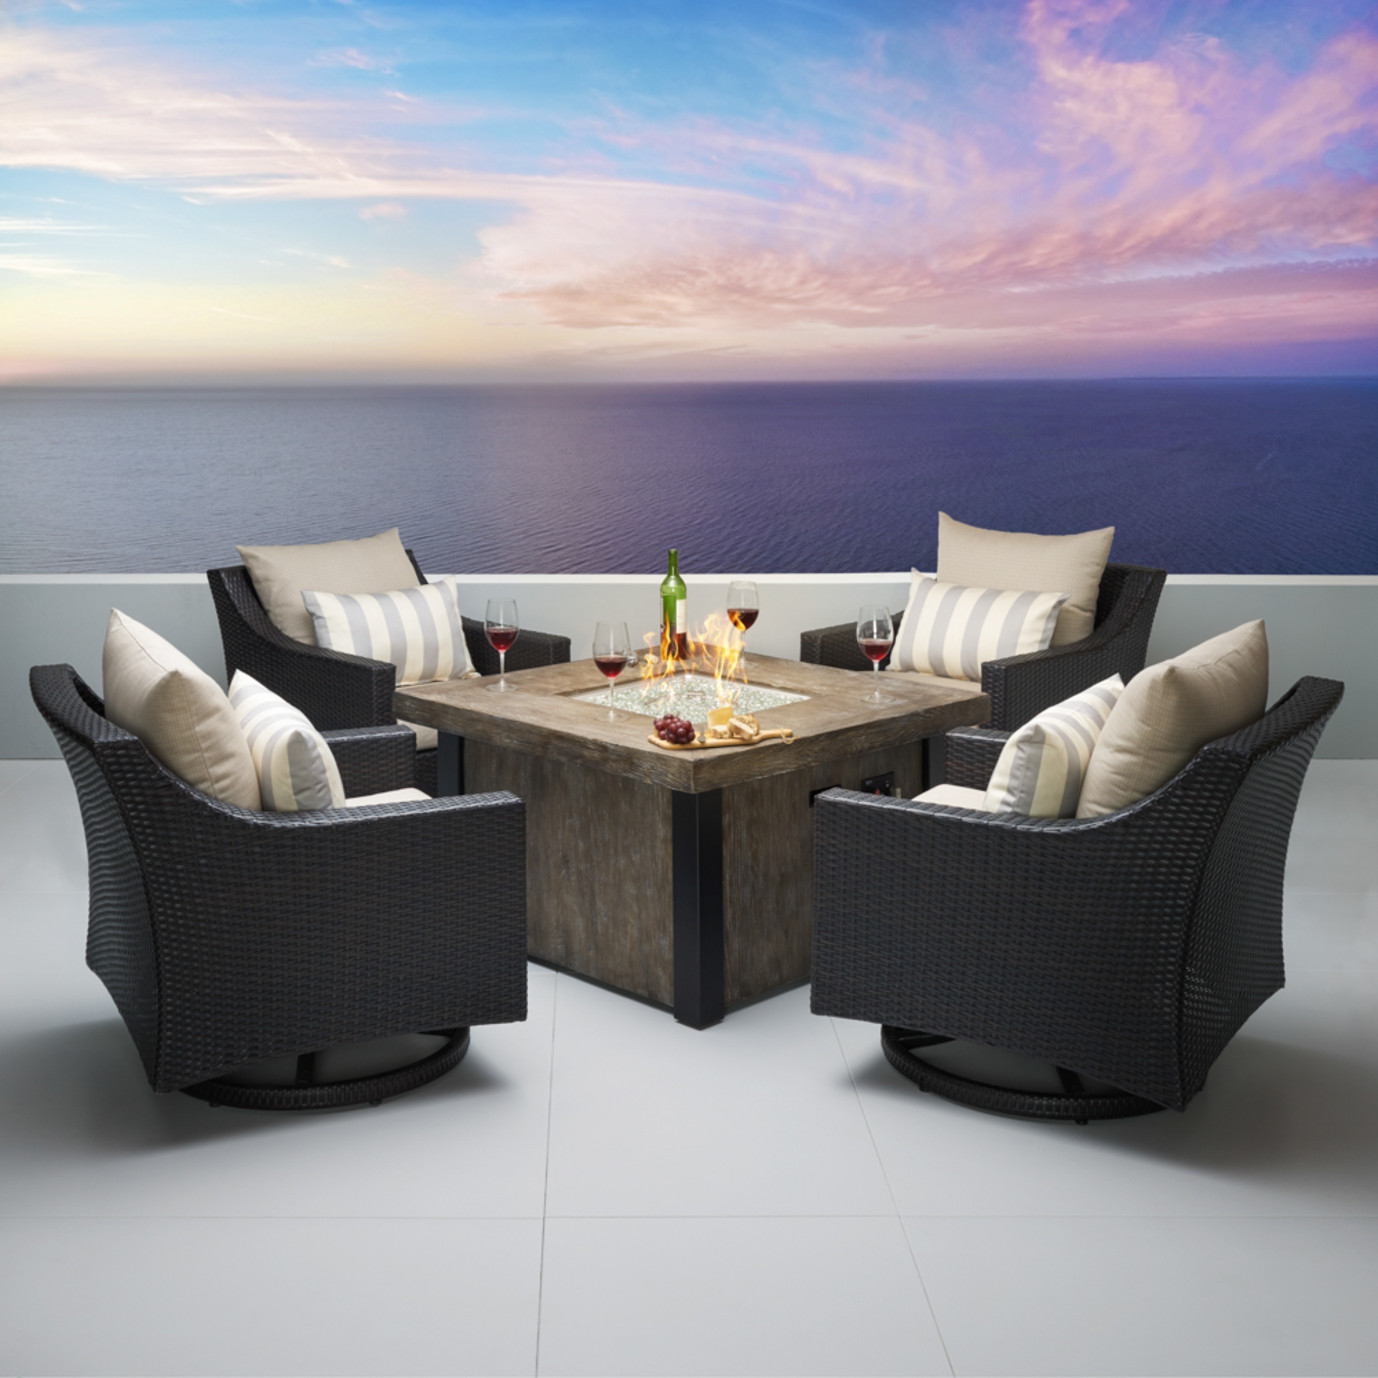 Deco™ 5pc Motion Fire Chat Set in Slate Grey